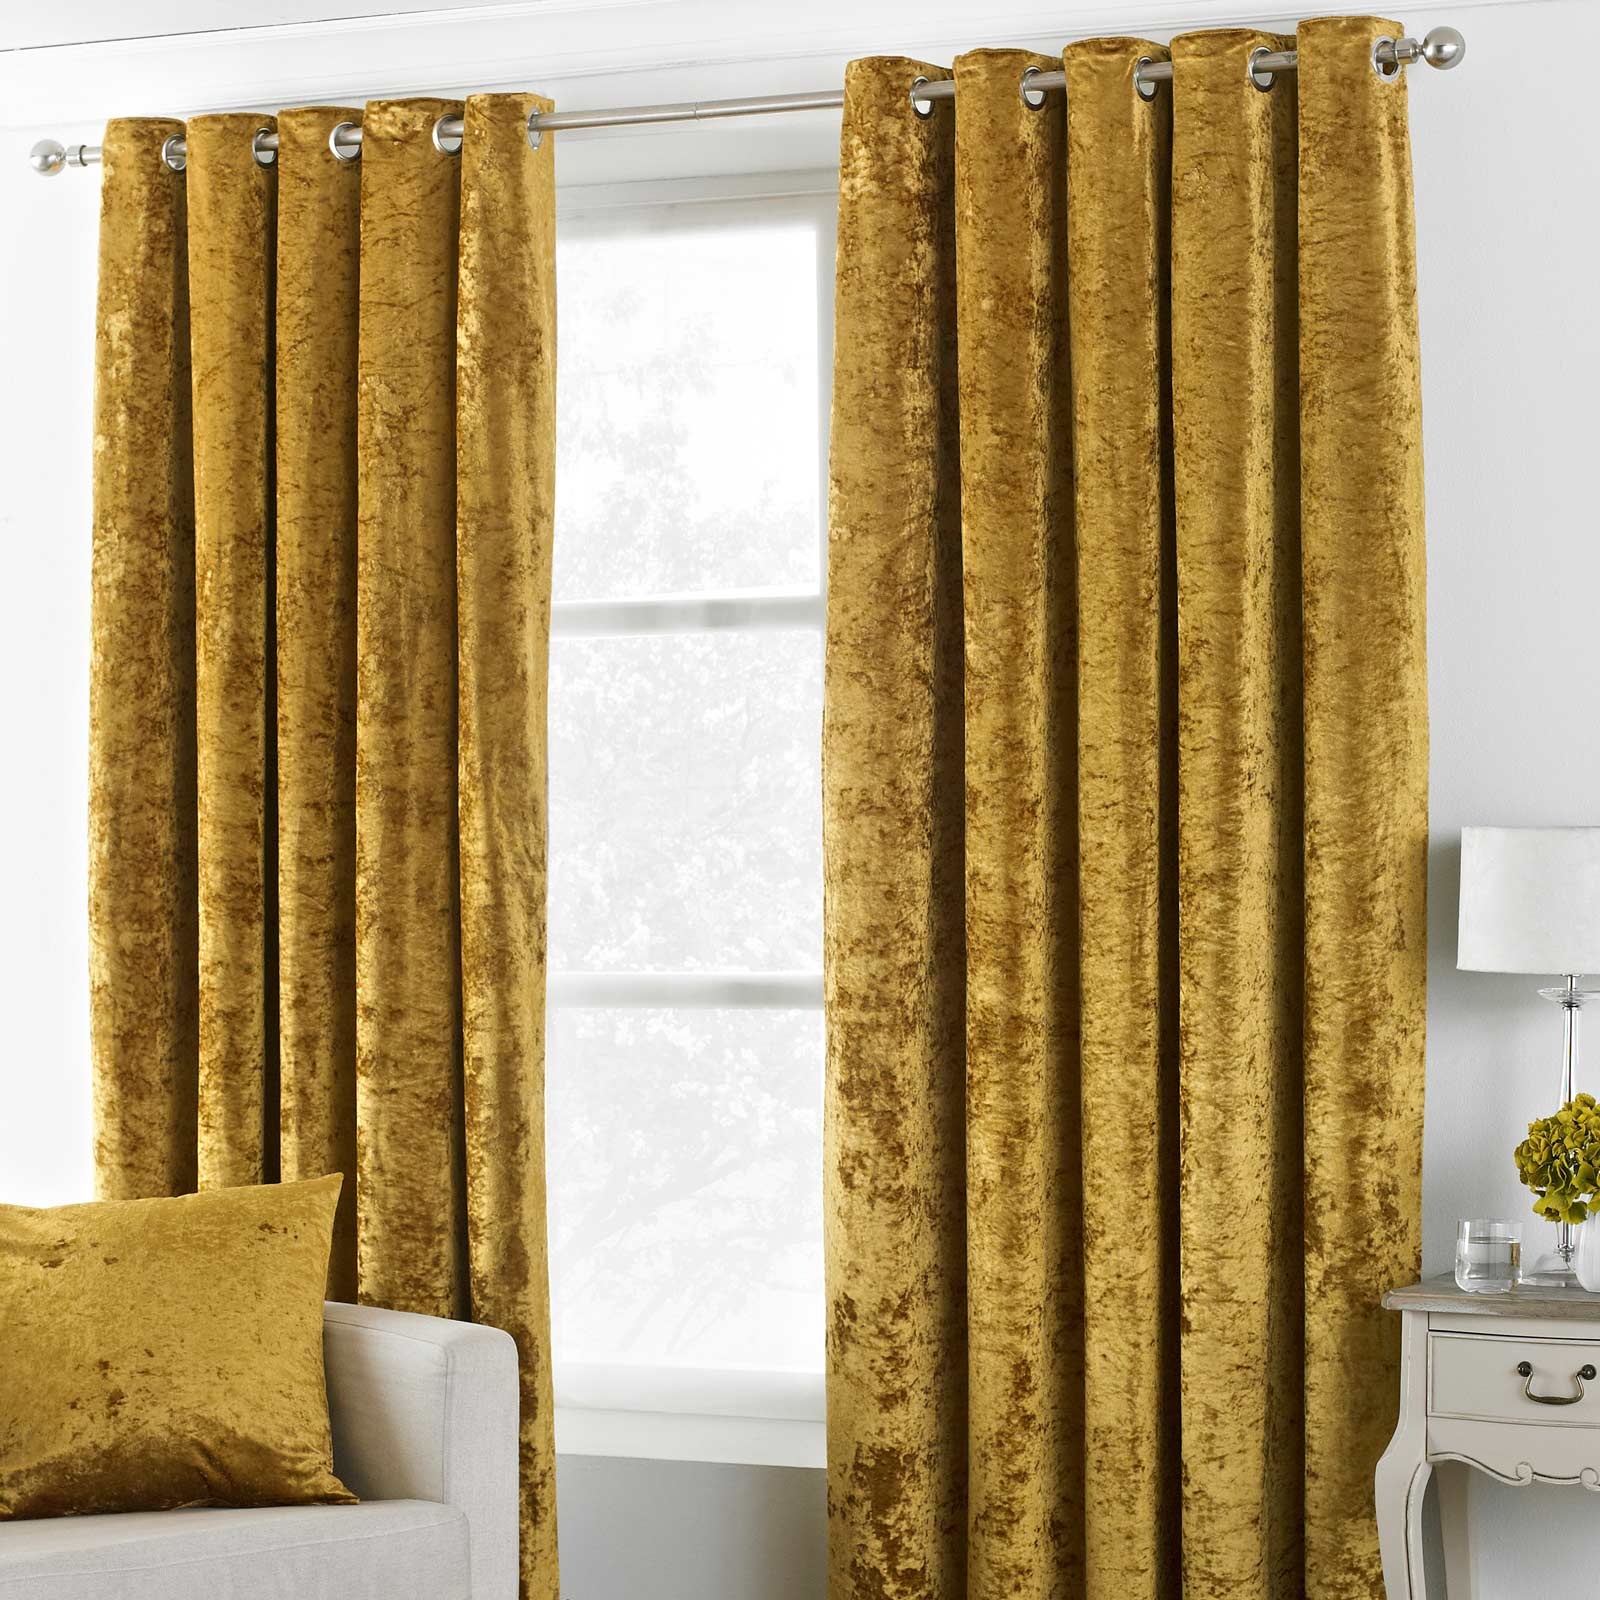 Verona Crushed Velvet Lined Eyelet Curtains Ochre - 46'' x 54'' - Ideal Textiles